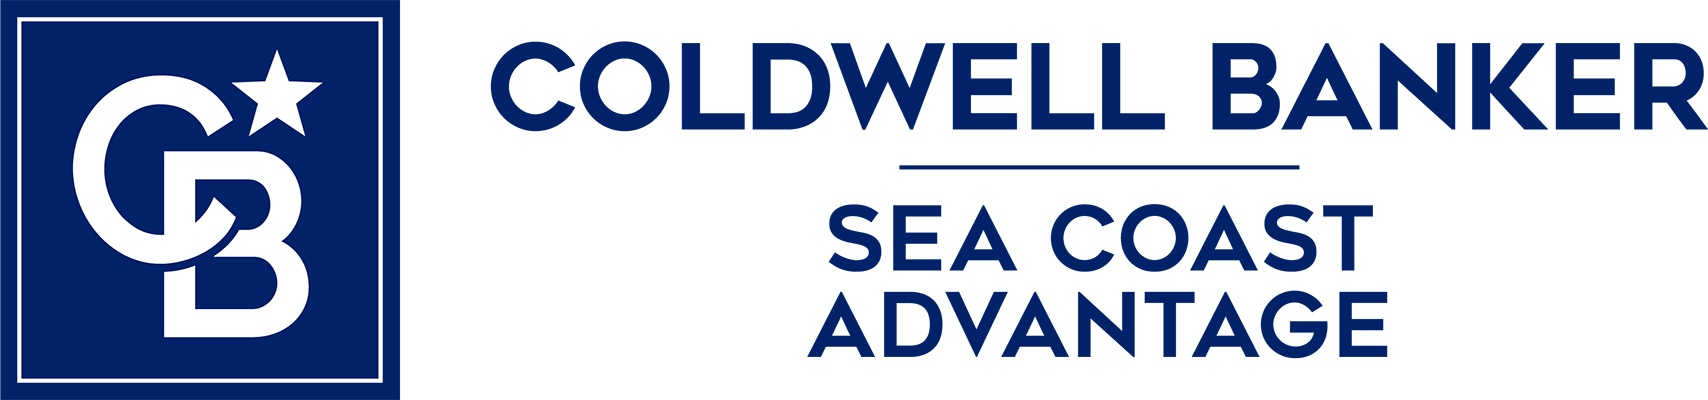 Mike Rokoski - Coldwell Banker Sea Coast Advantage Realty